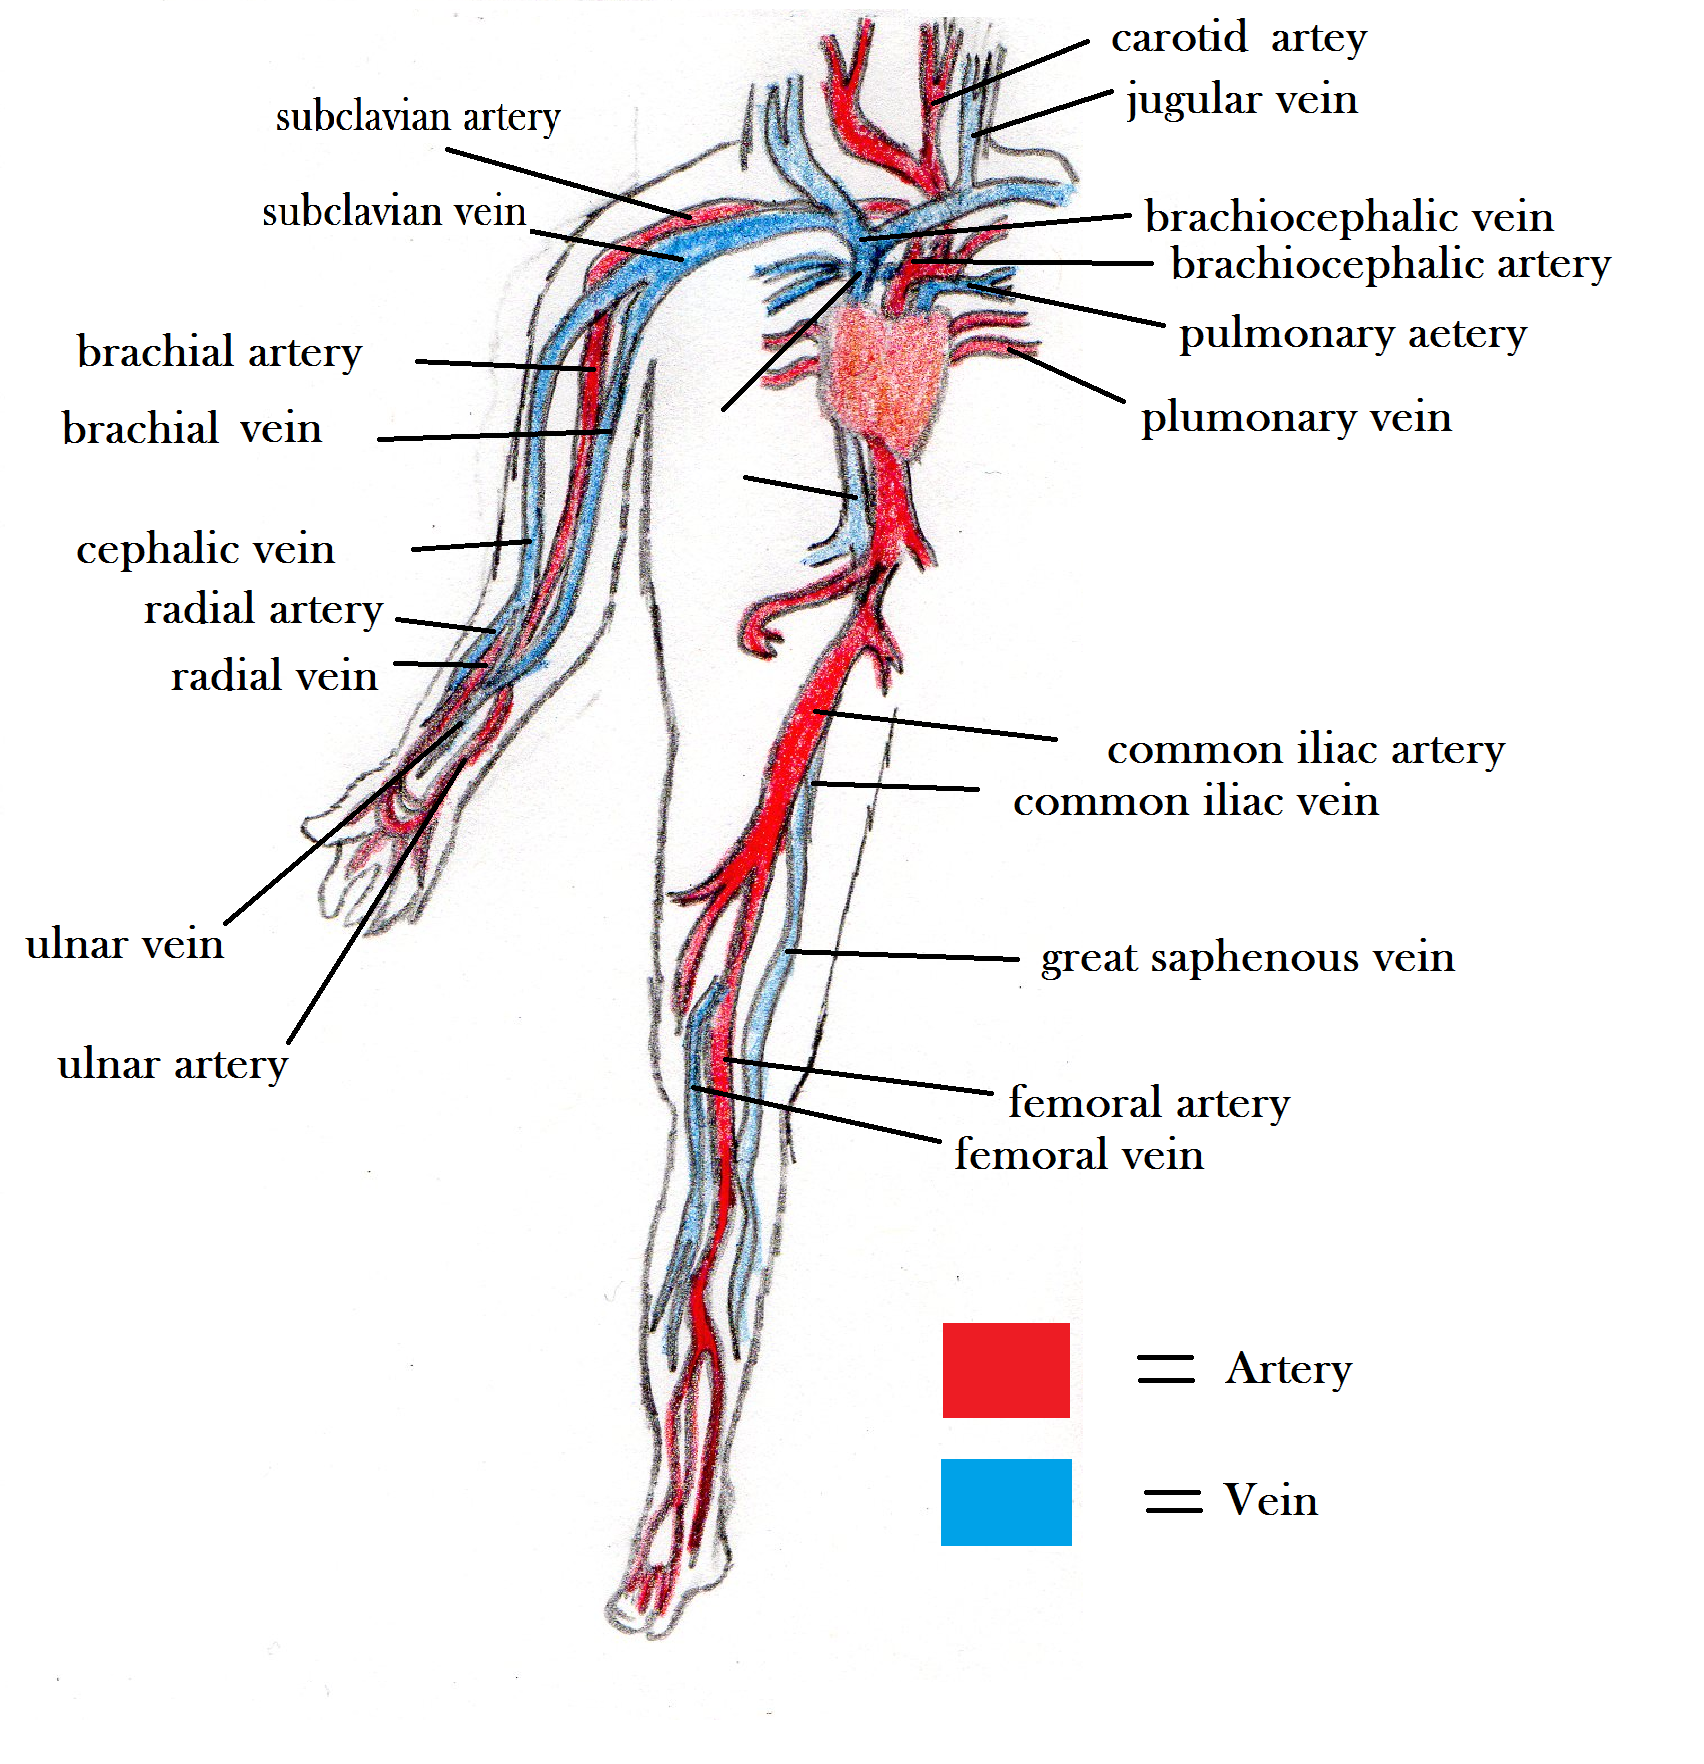 hight resolution of arteries and veins blood vessel diagram